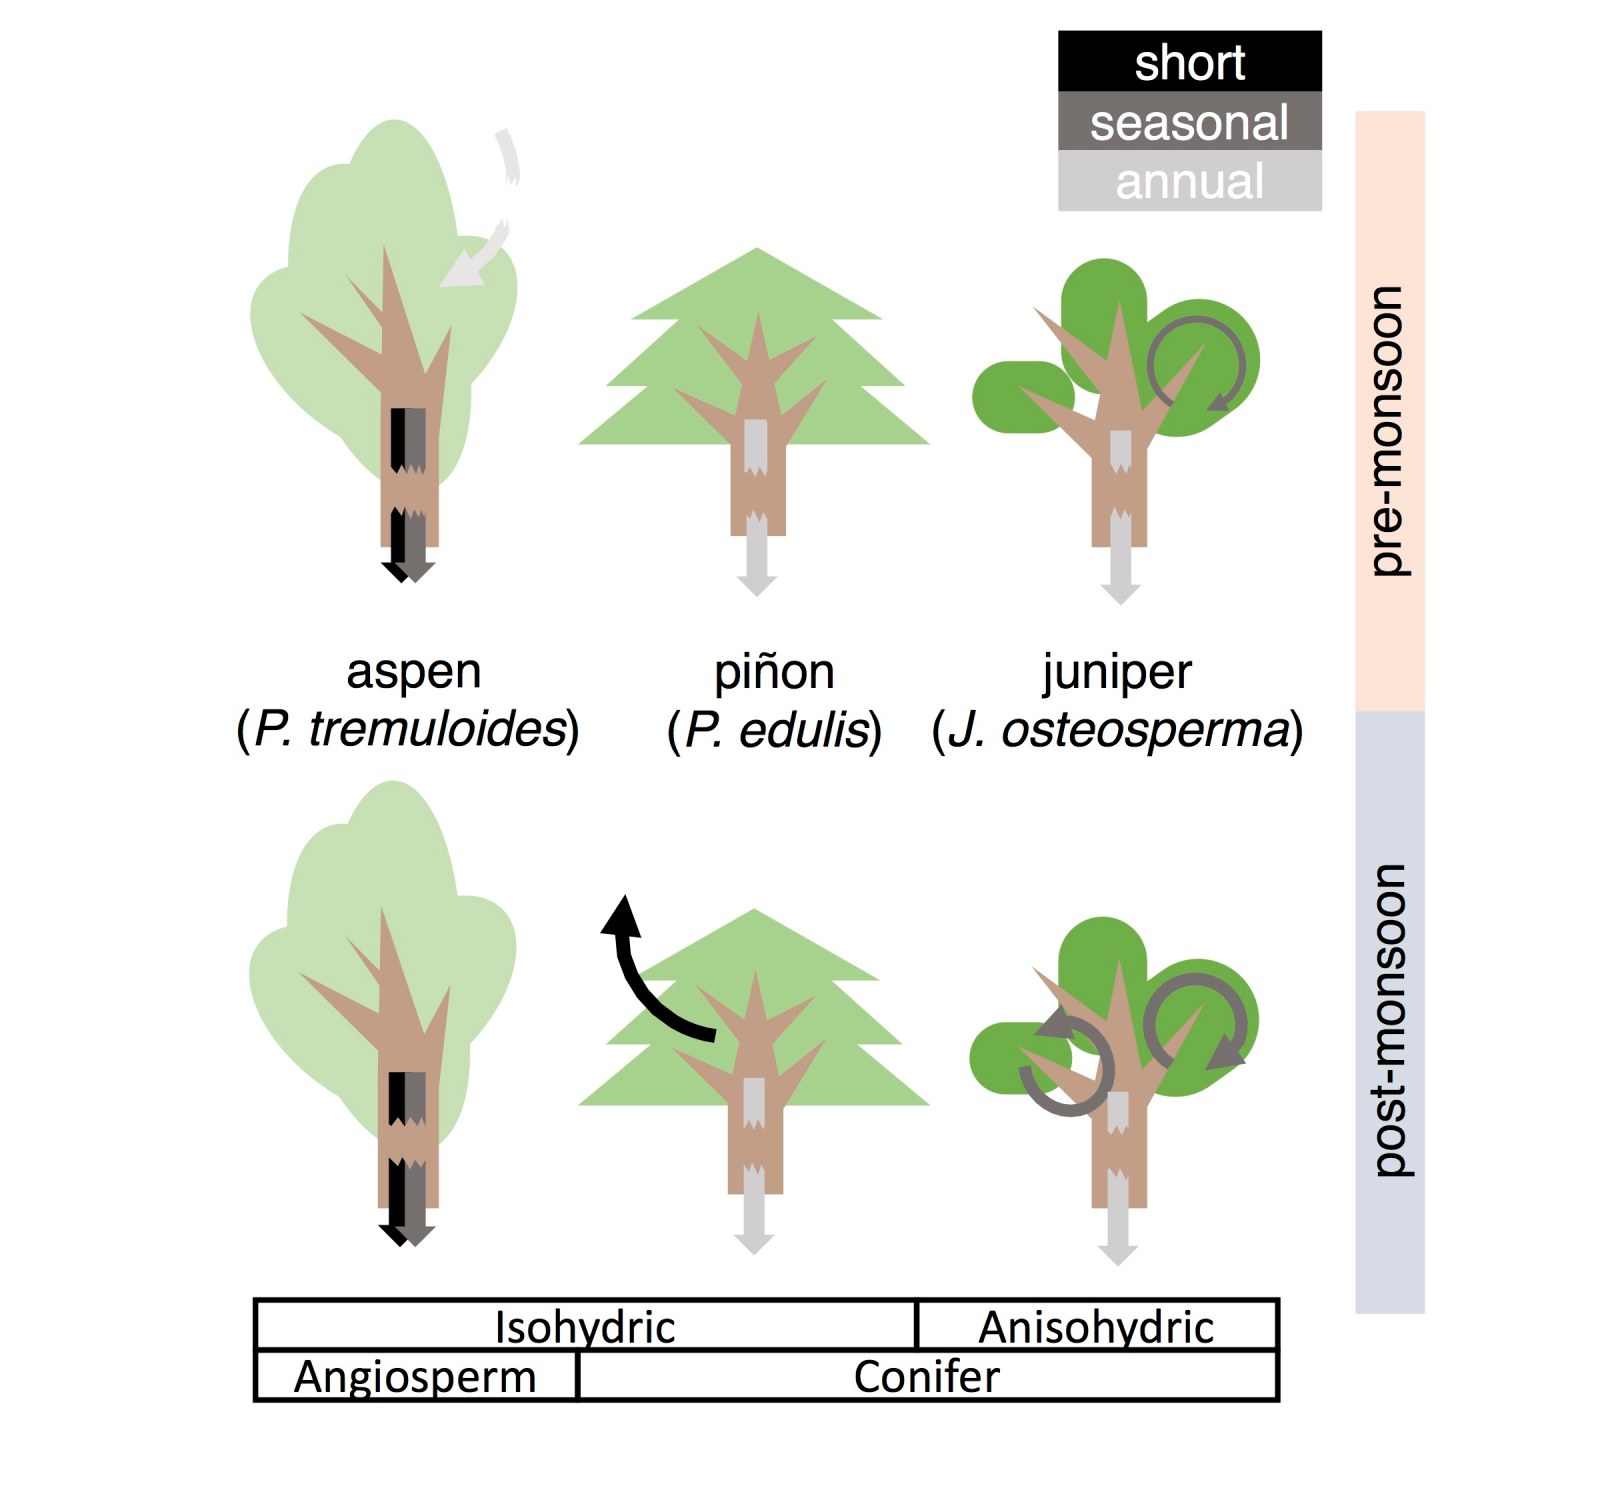 Cartoon showing three different tree species and their responses to precipitation